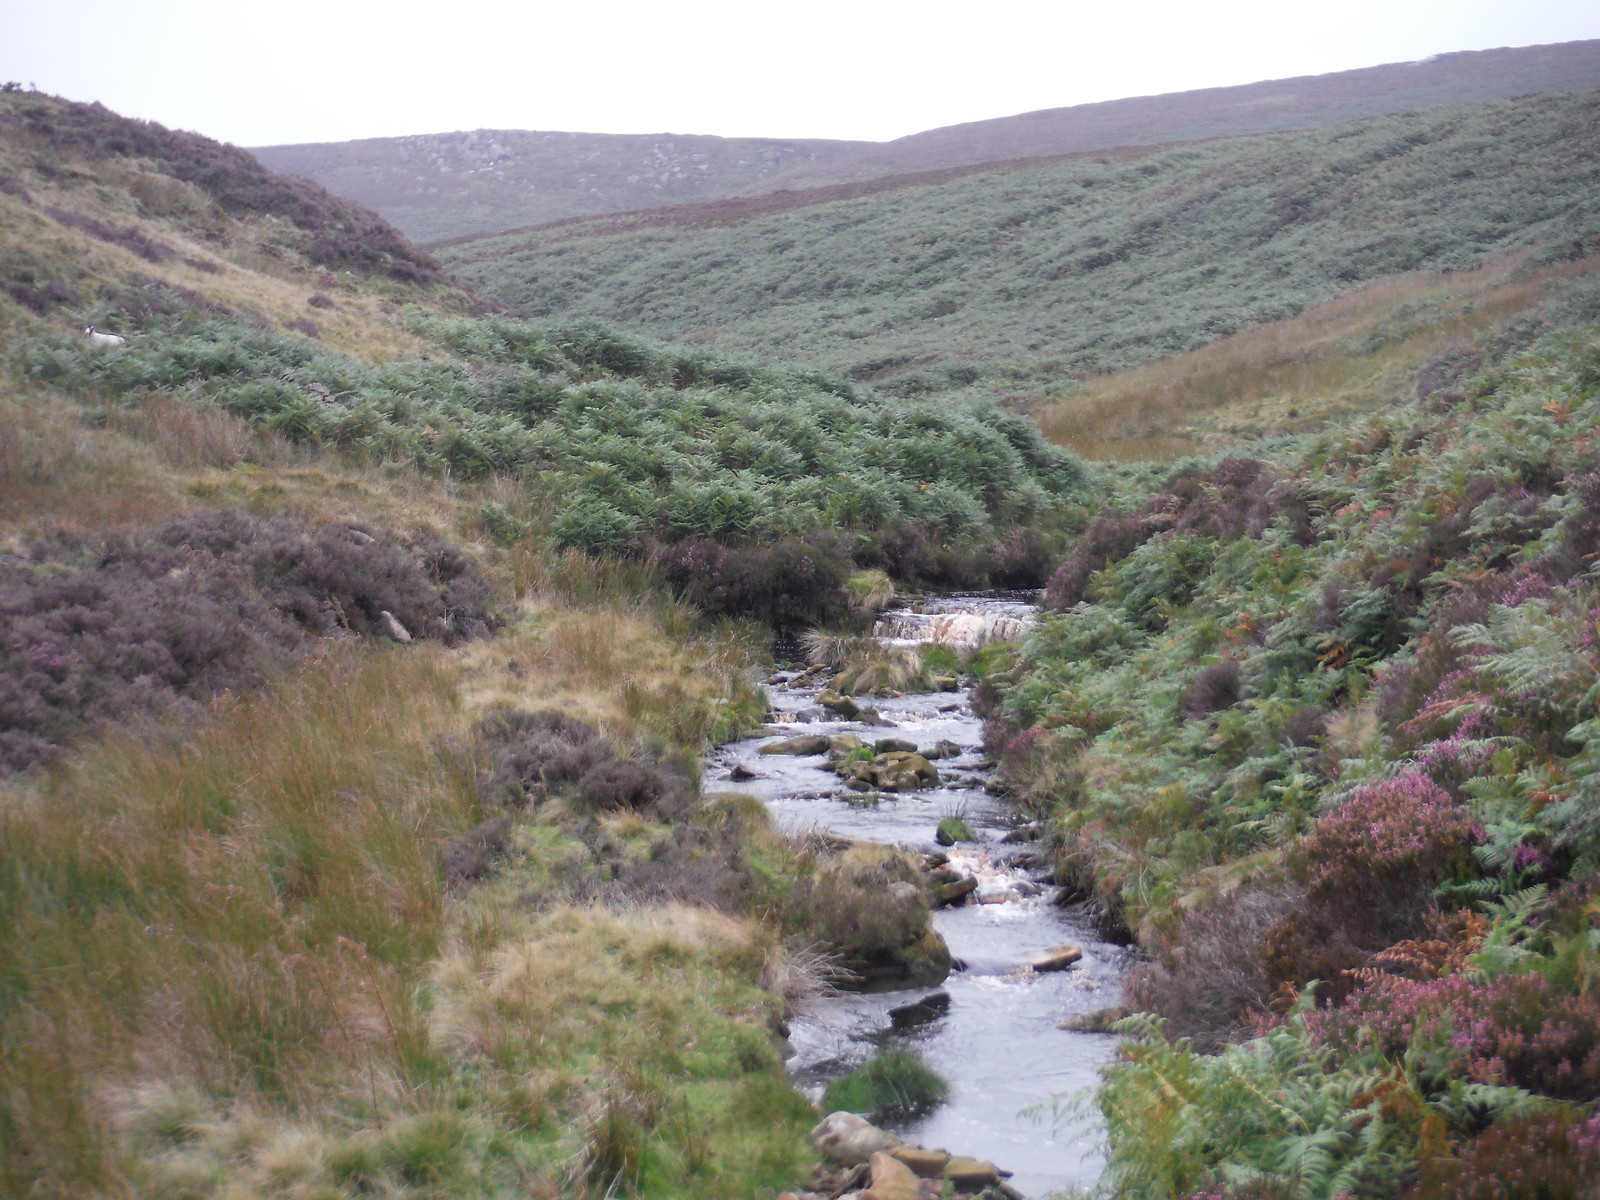 Upper Derwent Valley, upstream SWC Walk 350 - Fairholmes Circular (via Bleaklow and Derwent Head)